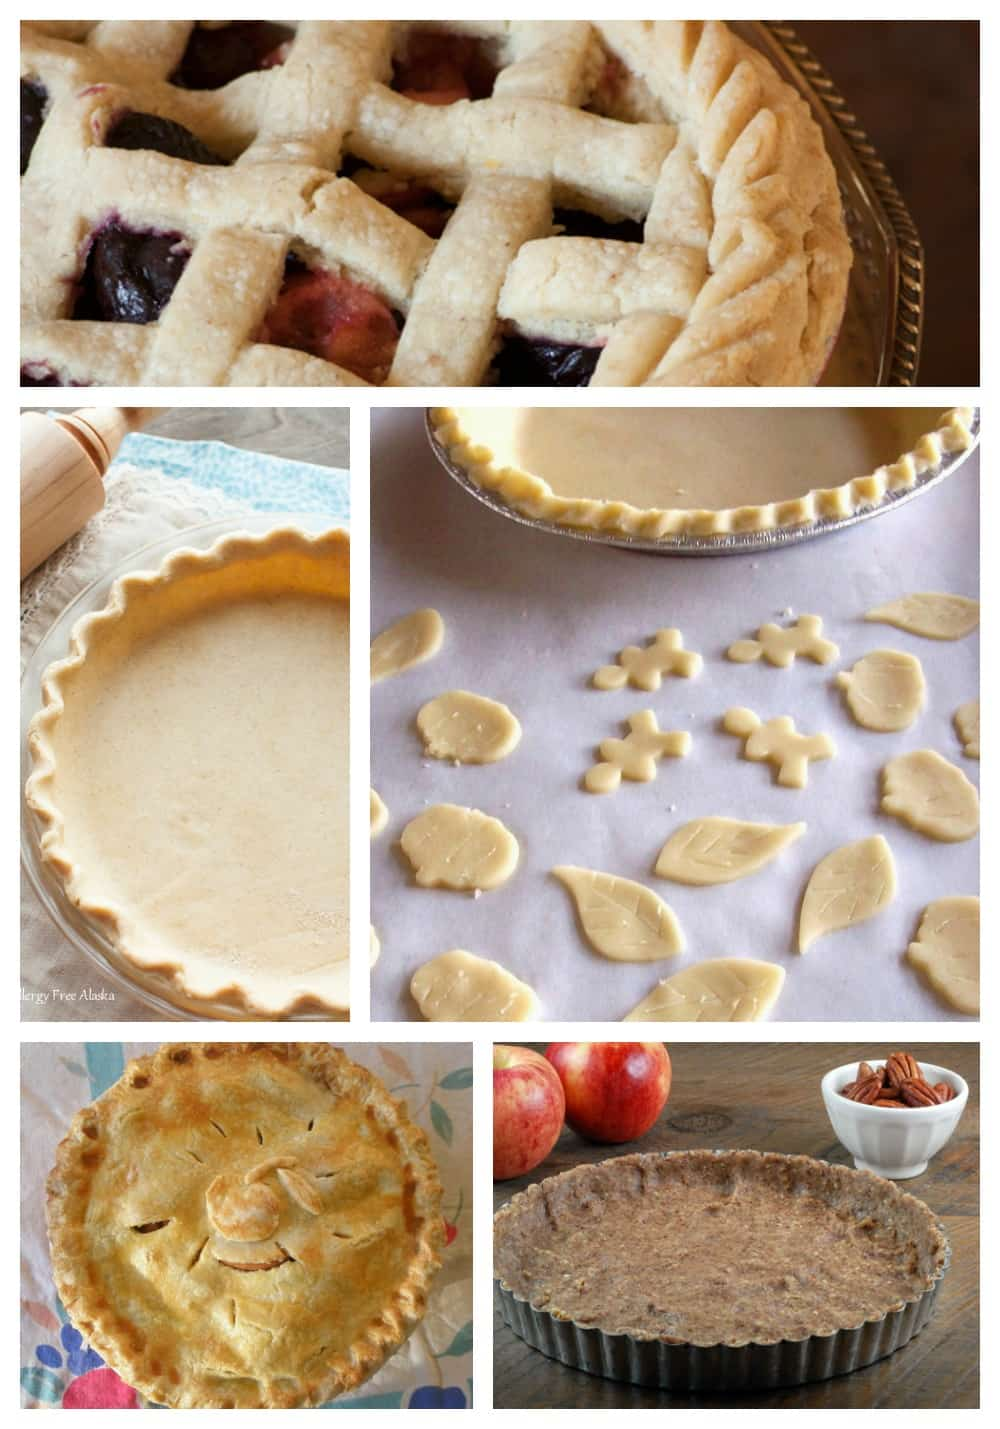 Here are 40+ best gluten-free pie crust recipes that will make your holidays and everyday--any time that a good gluten-free pie is required!